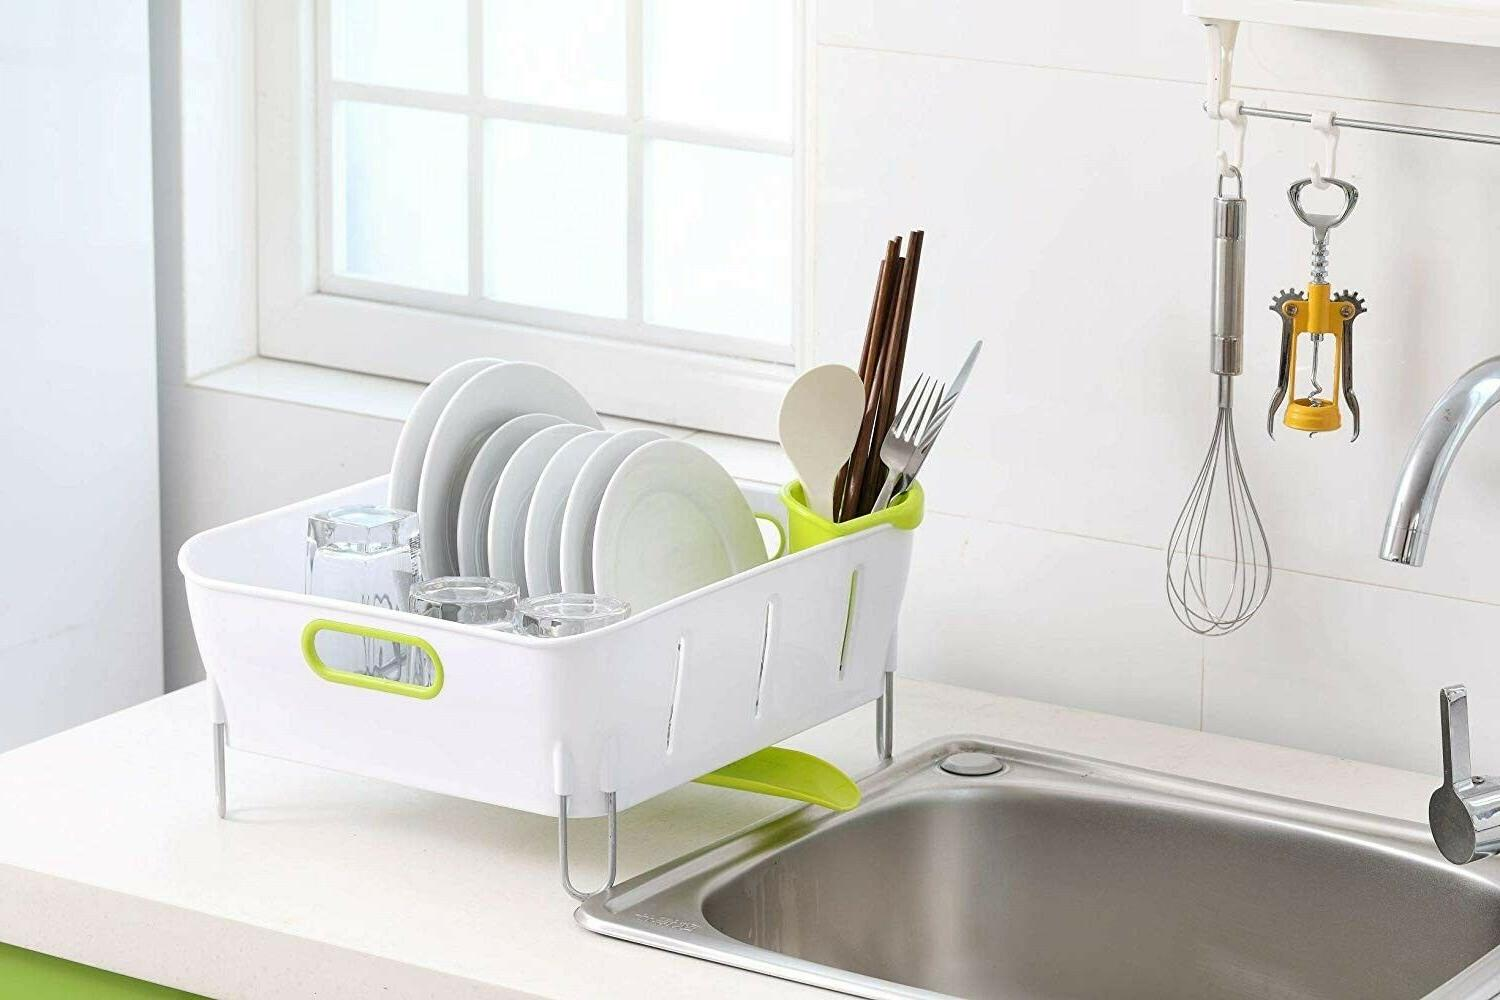 Dish drying drainboard set Swivel Spout